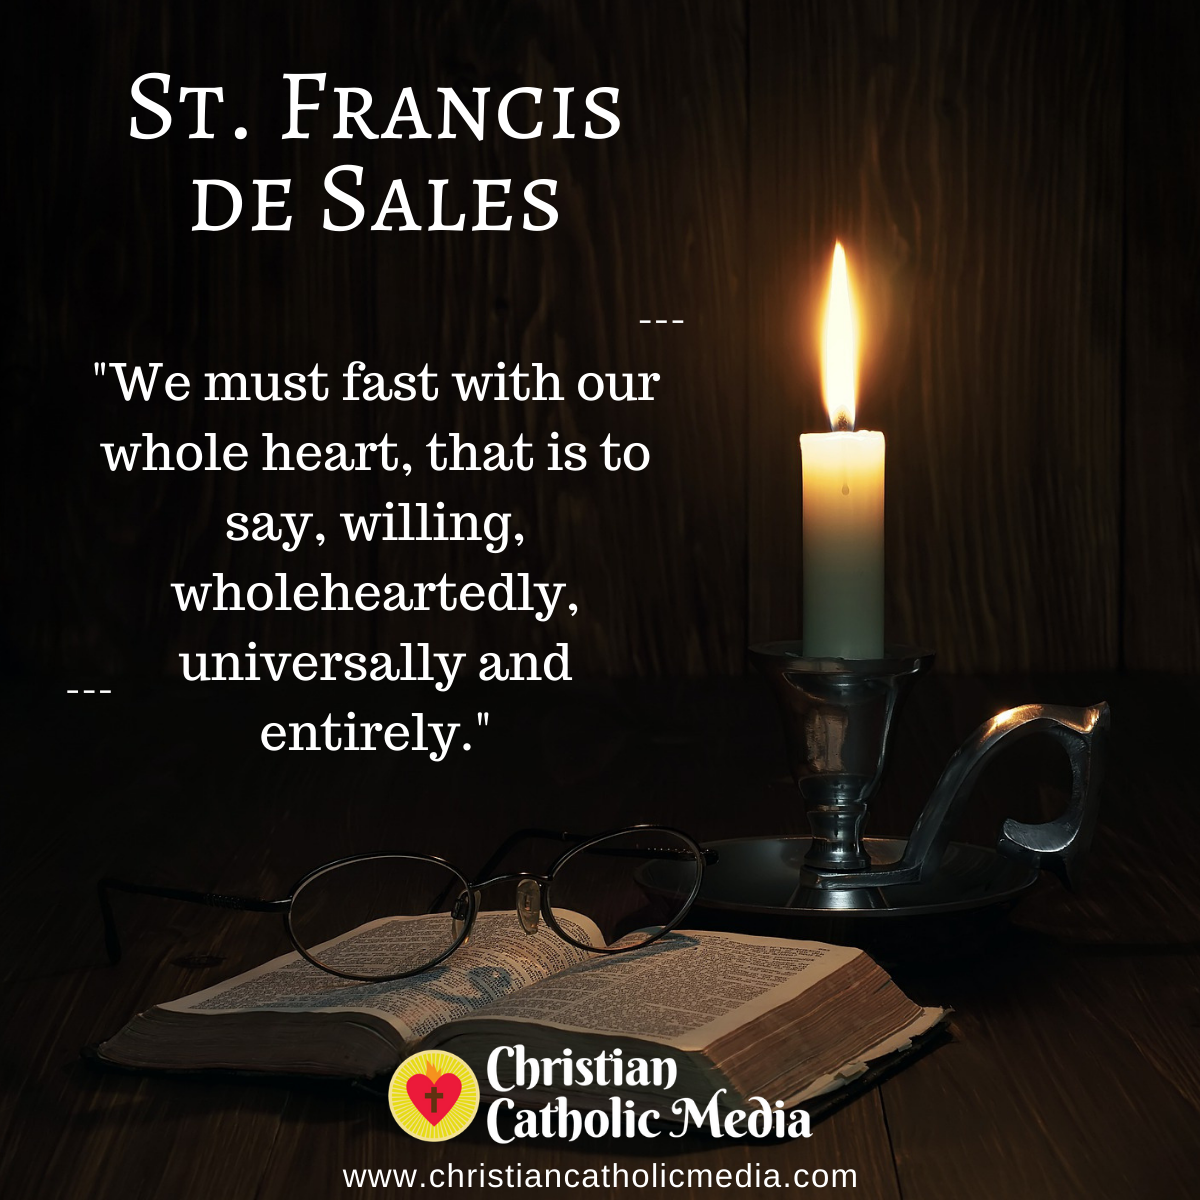 St. Francis de Sales - Thursday December 31, 2020